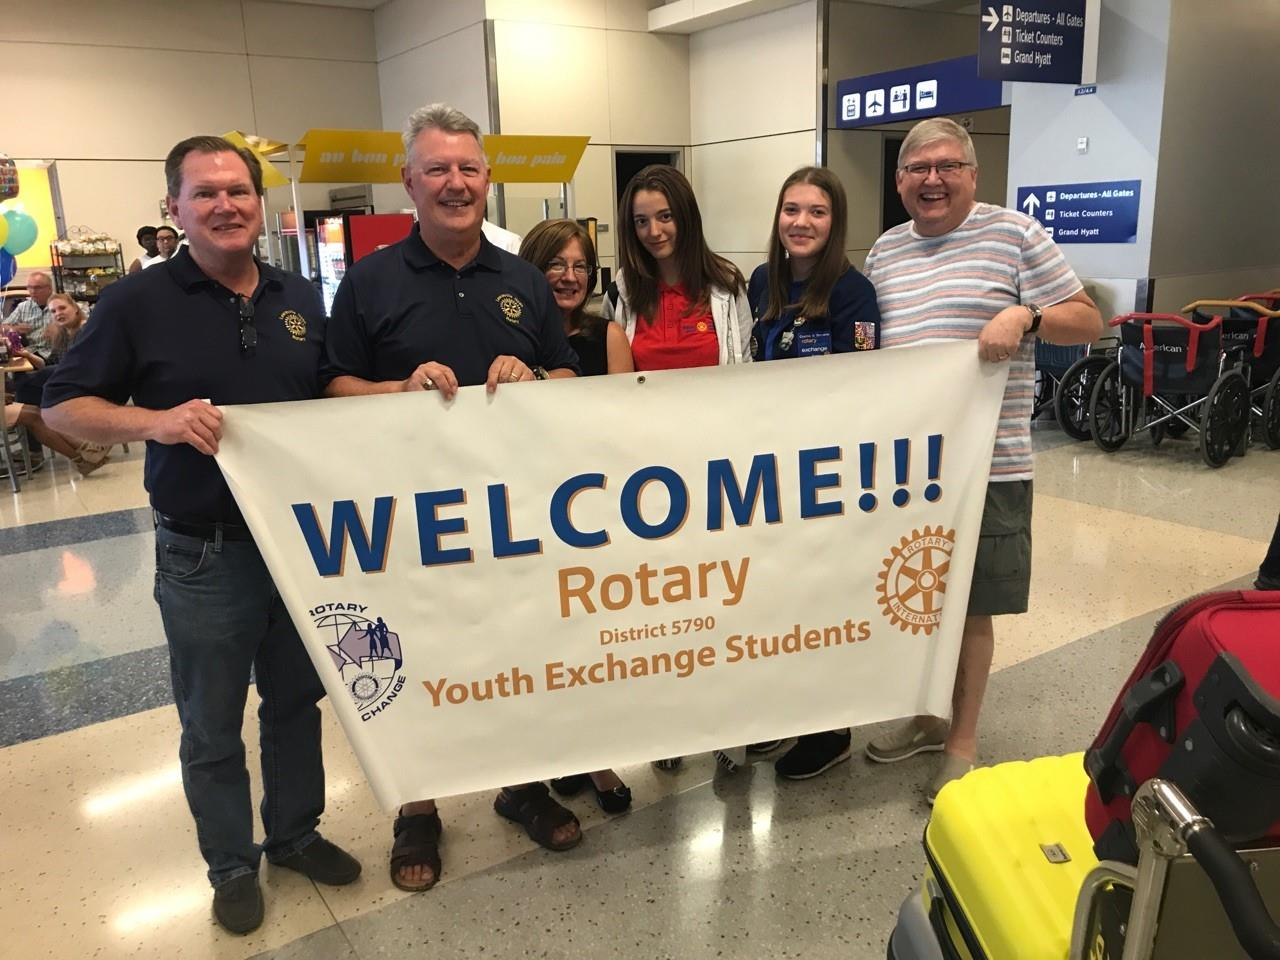 Lewisville Rotary and District 5790 Welcome Youth Exchange Student